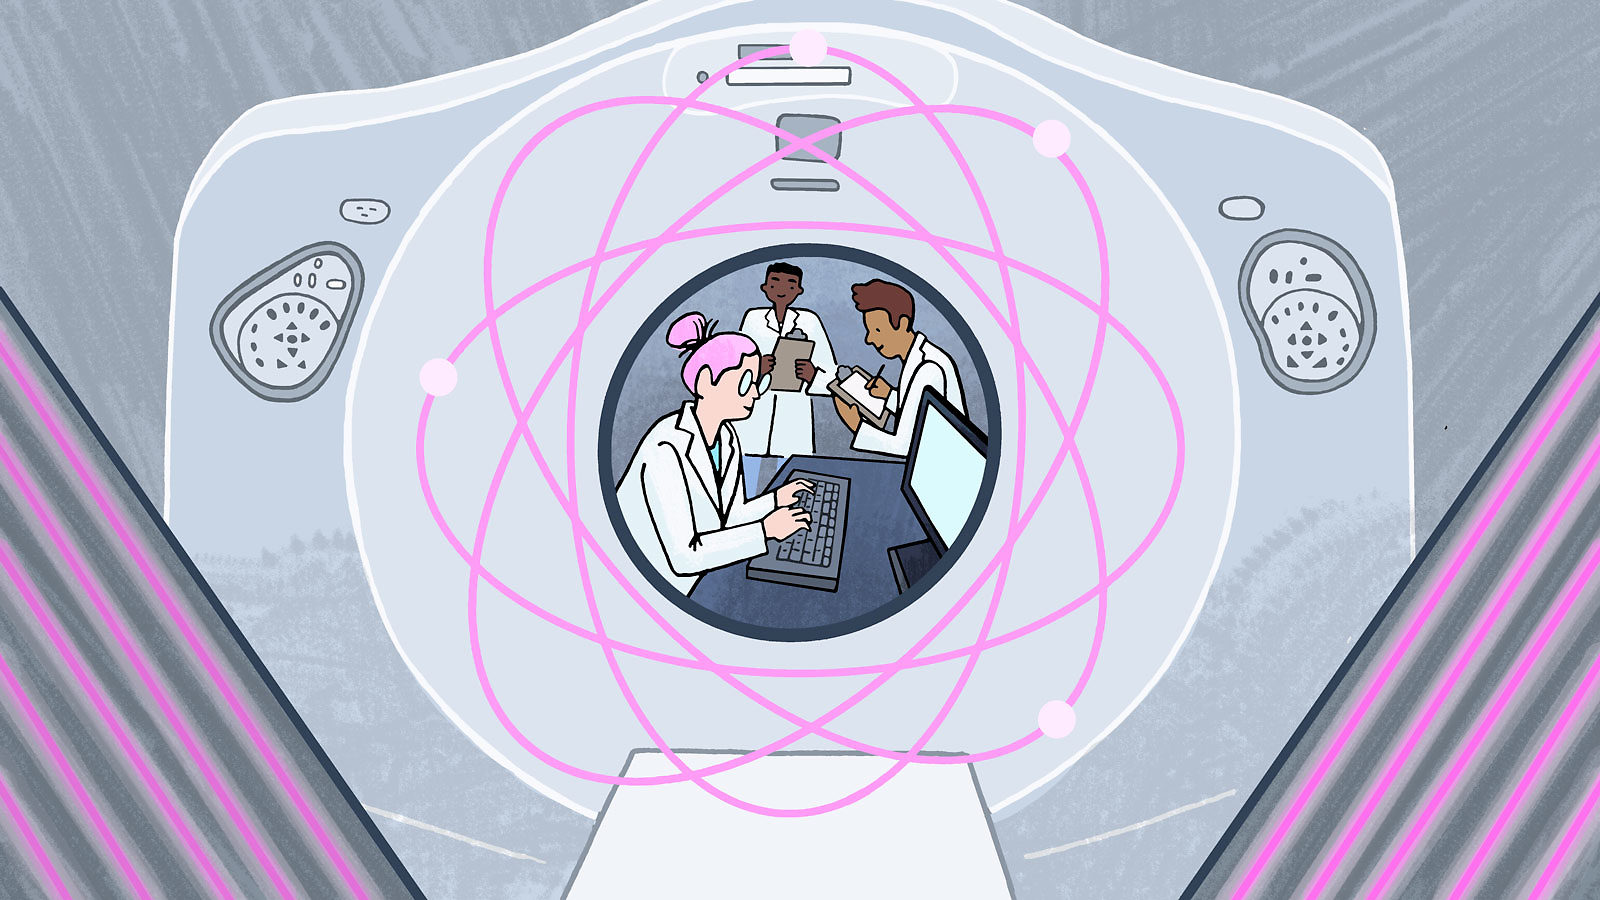 Medical scientists shown working through an MRI